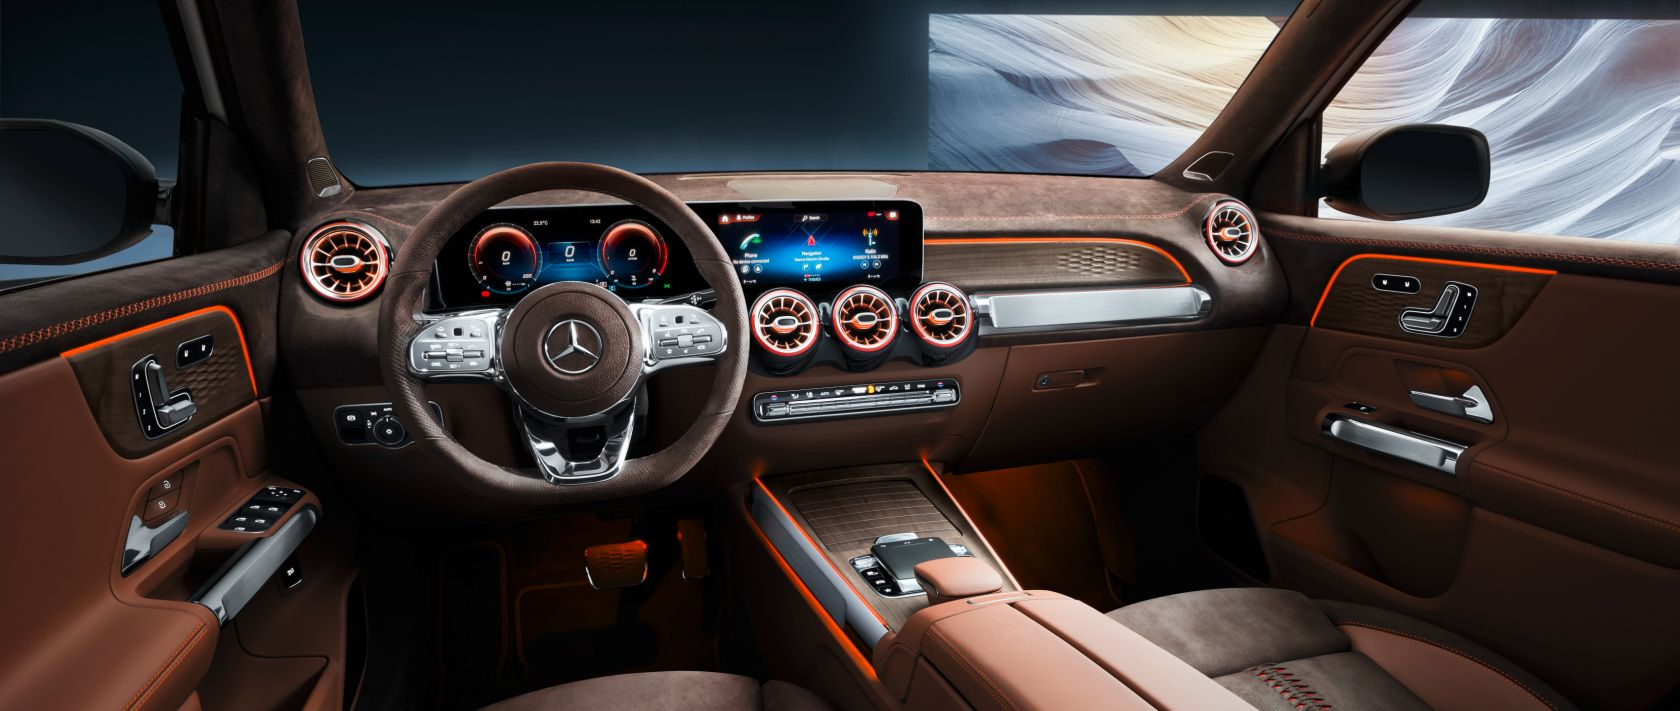 Interior of the Mercedes-Benz Concept GLB.